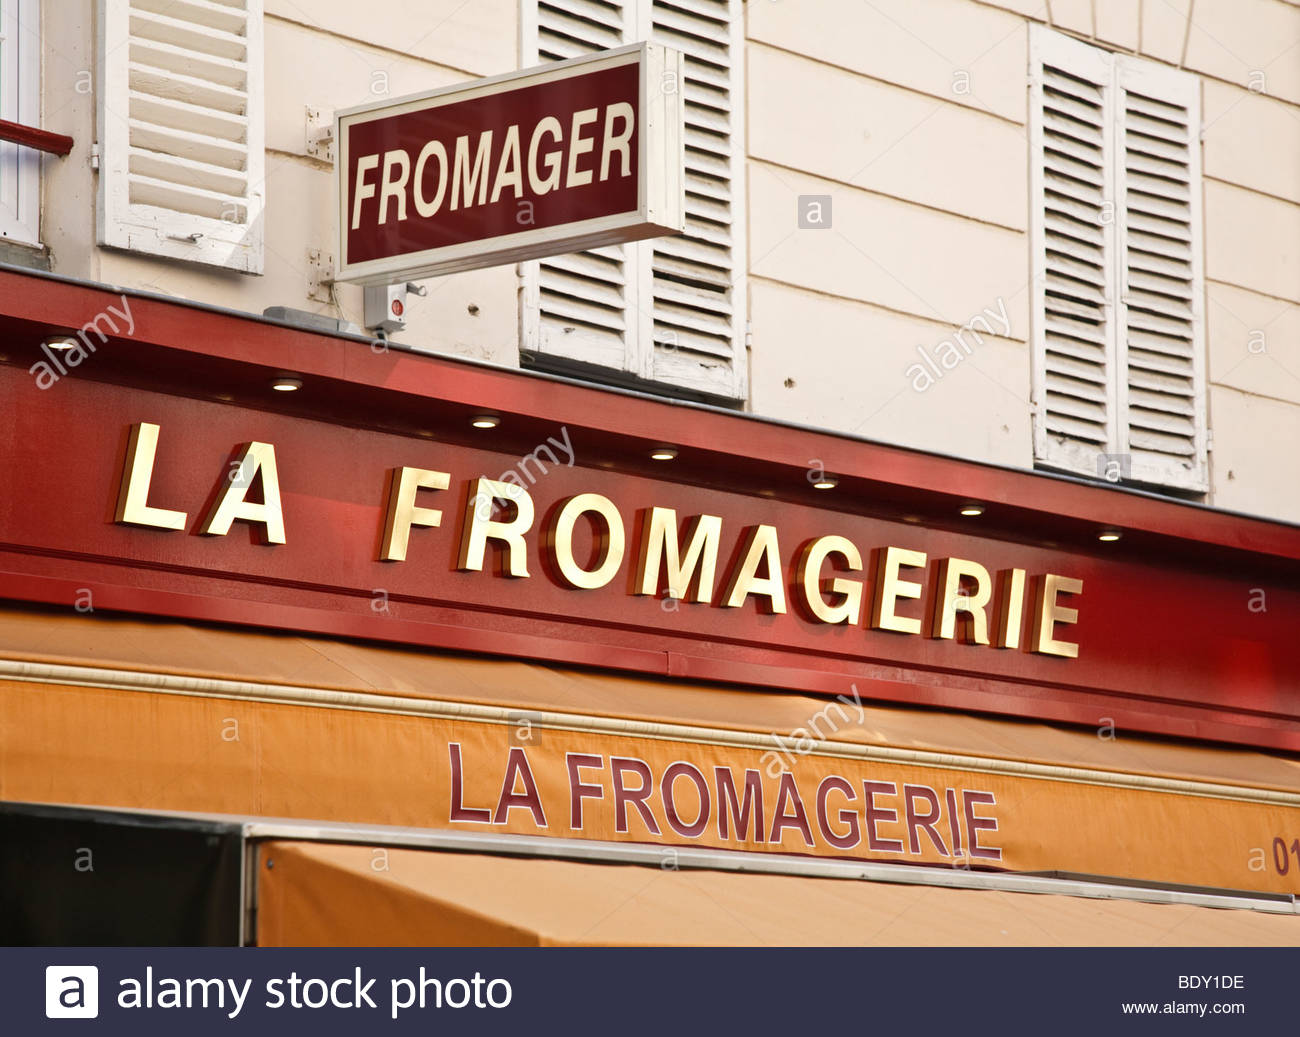 Shop signs above a Fromagerie (cheese shop) on Rue Cler in Paris, France - Stock Image